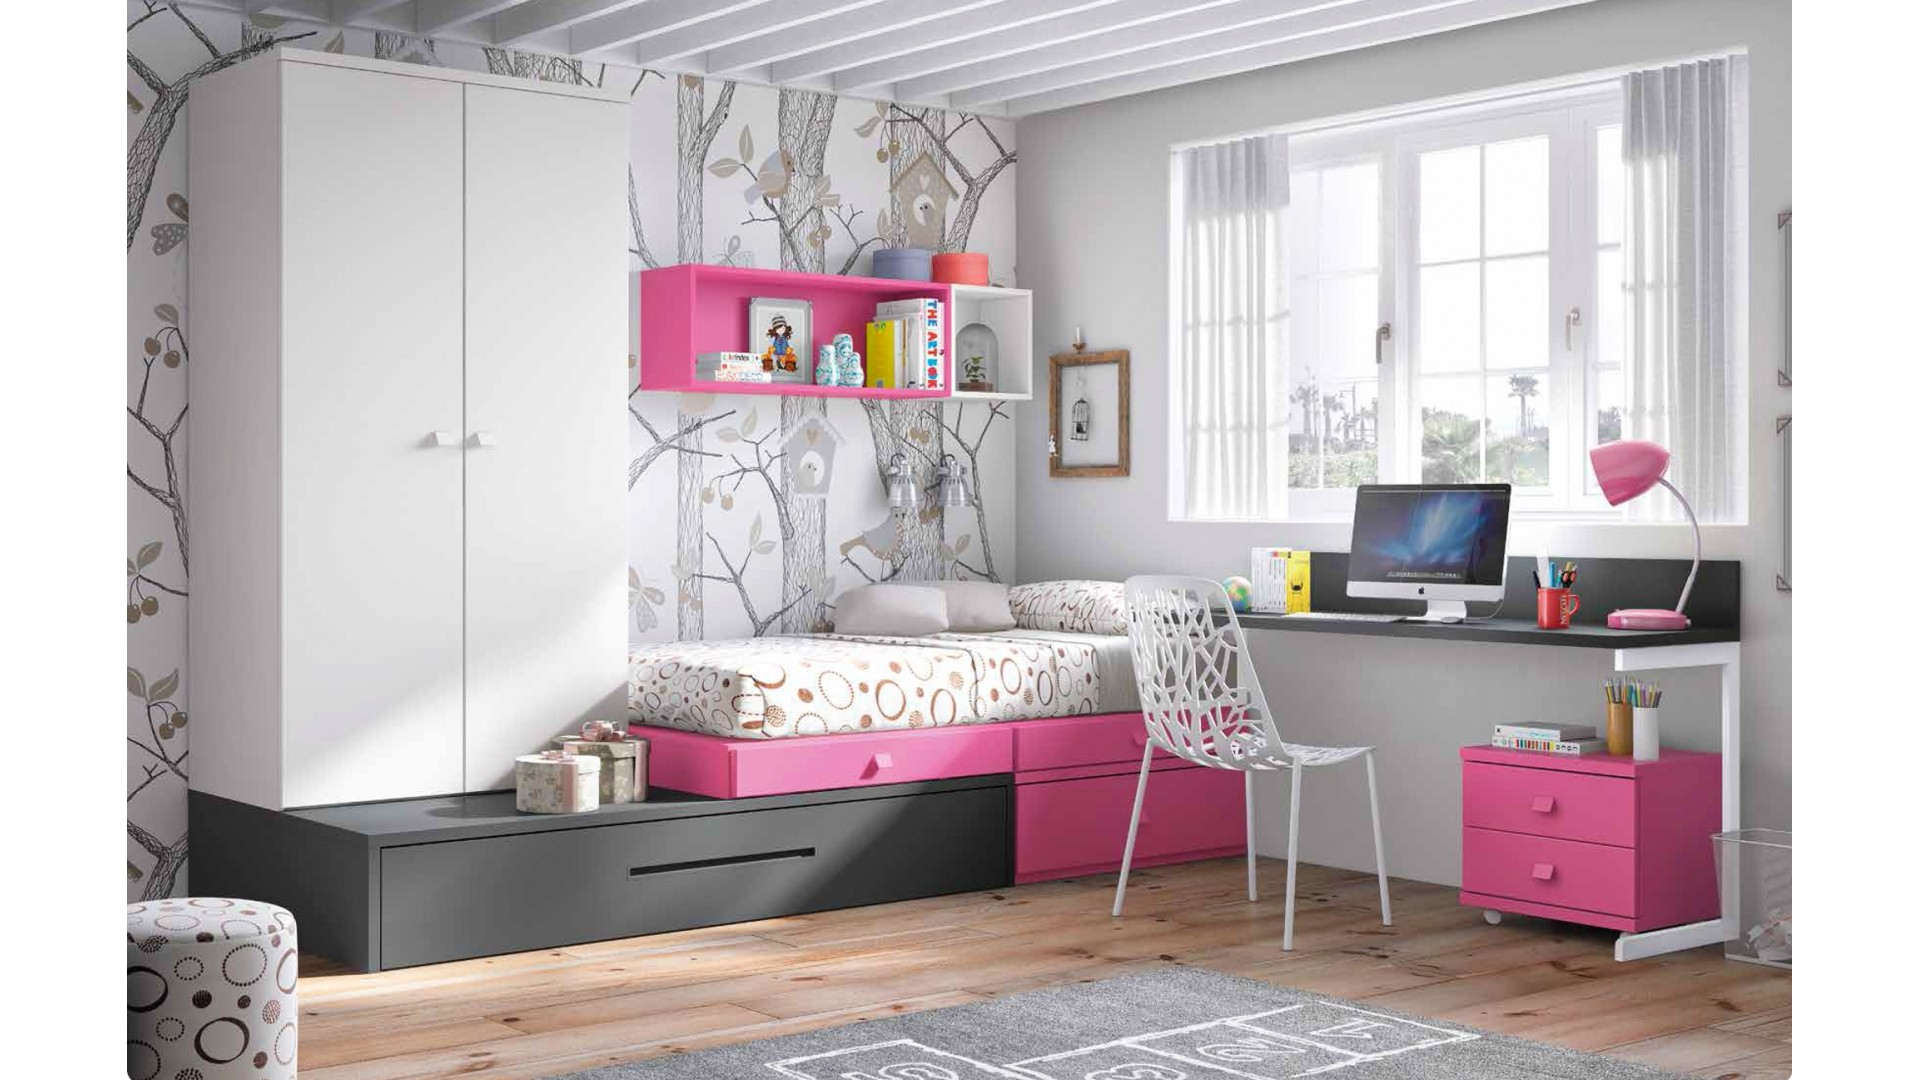 chambre enfant complete personnaliser girly glicerio so nuit. Black Bedroom Furniture Sets. Home Design Ideas